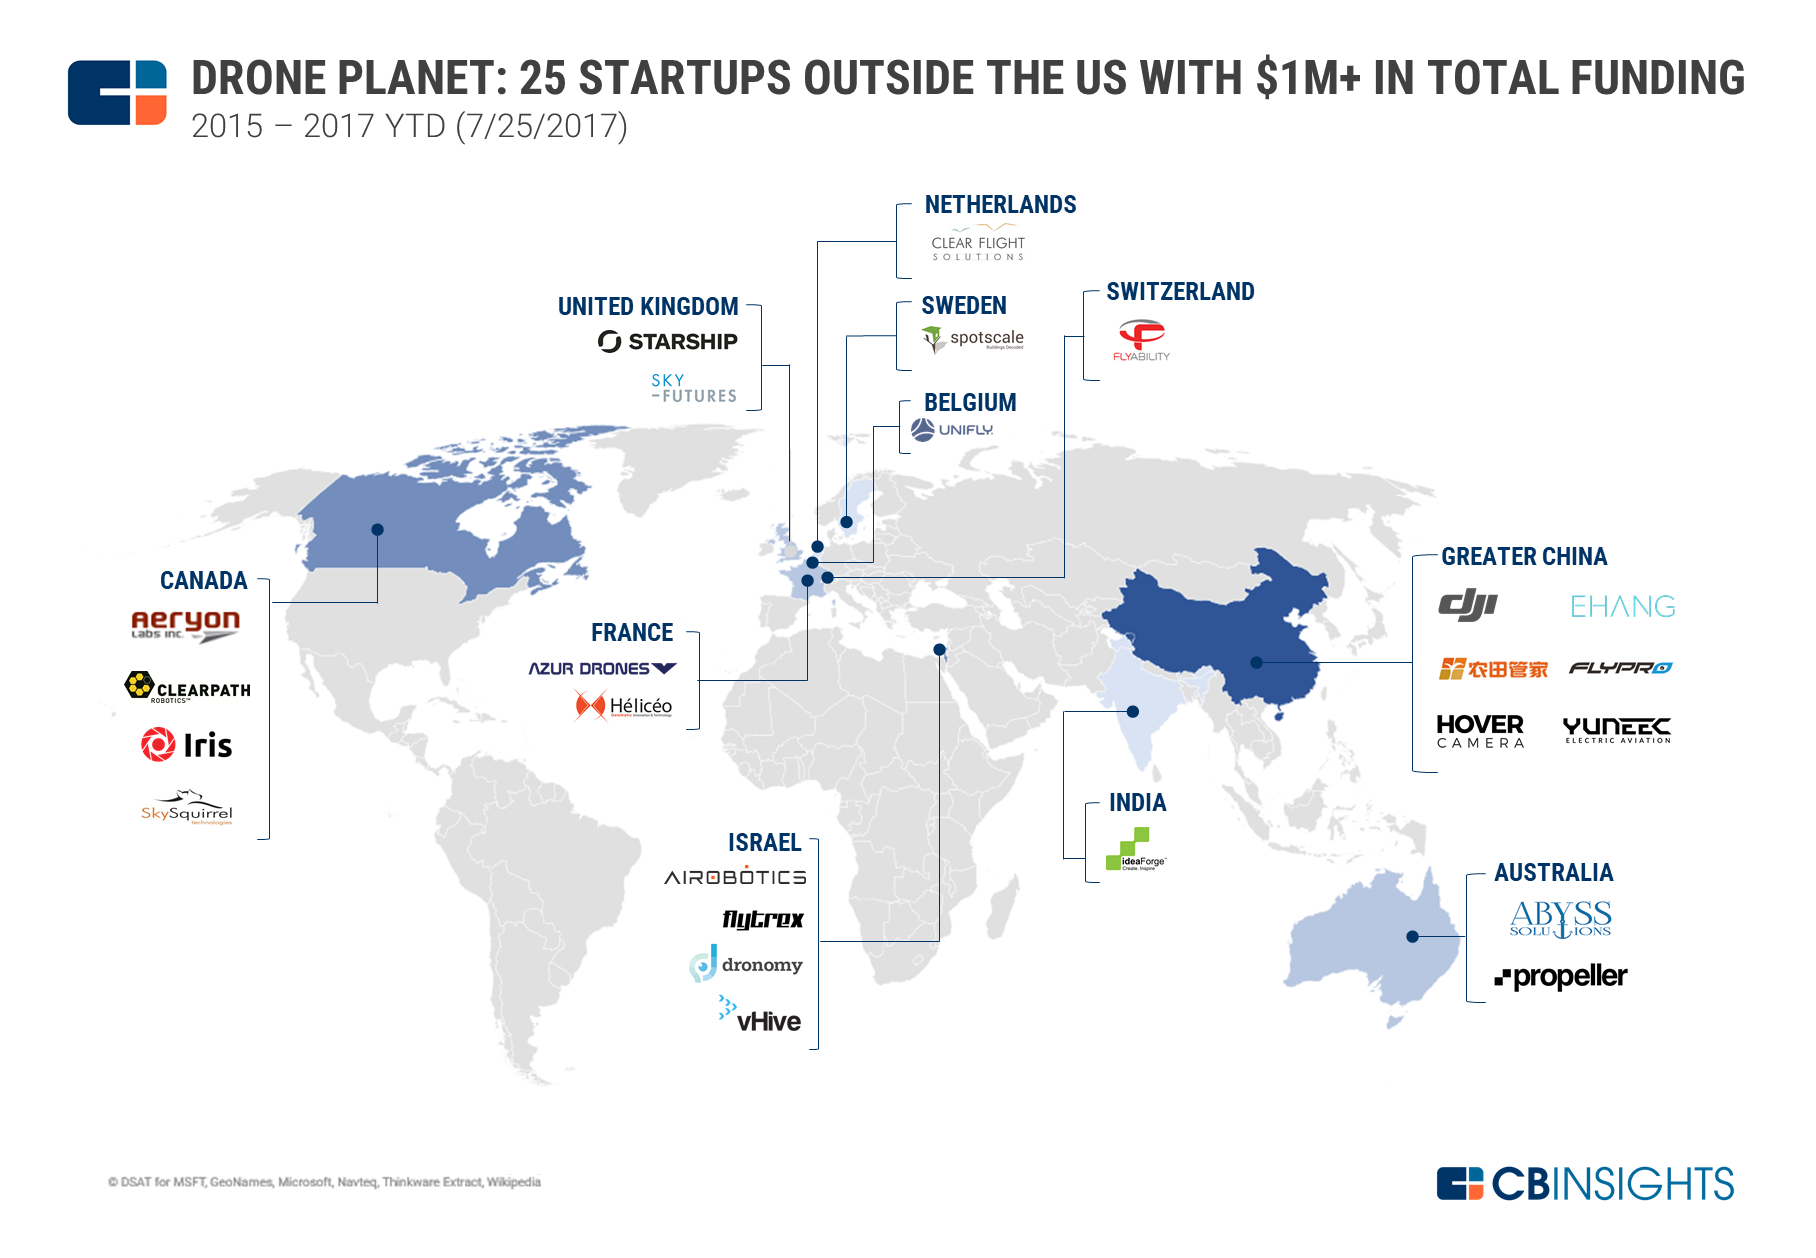 In The Map Below We Identified Private Active Drone Companies Outside The Us That Have 1m In Total Disclosed Funding And That Have Raised An Equity Round